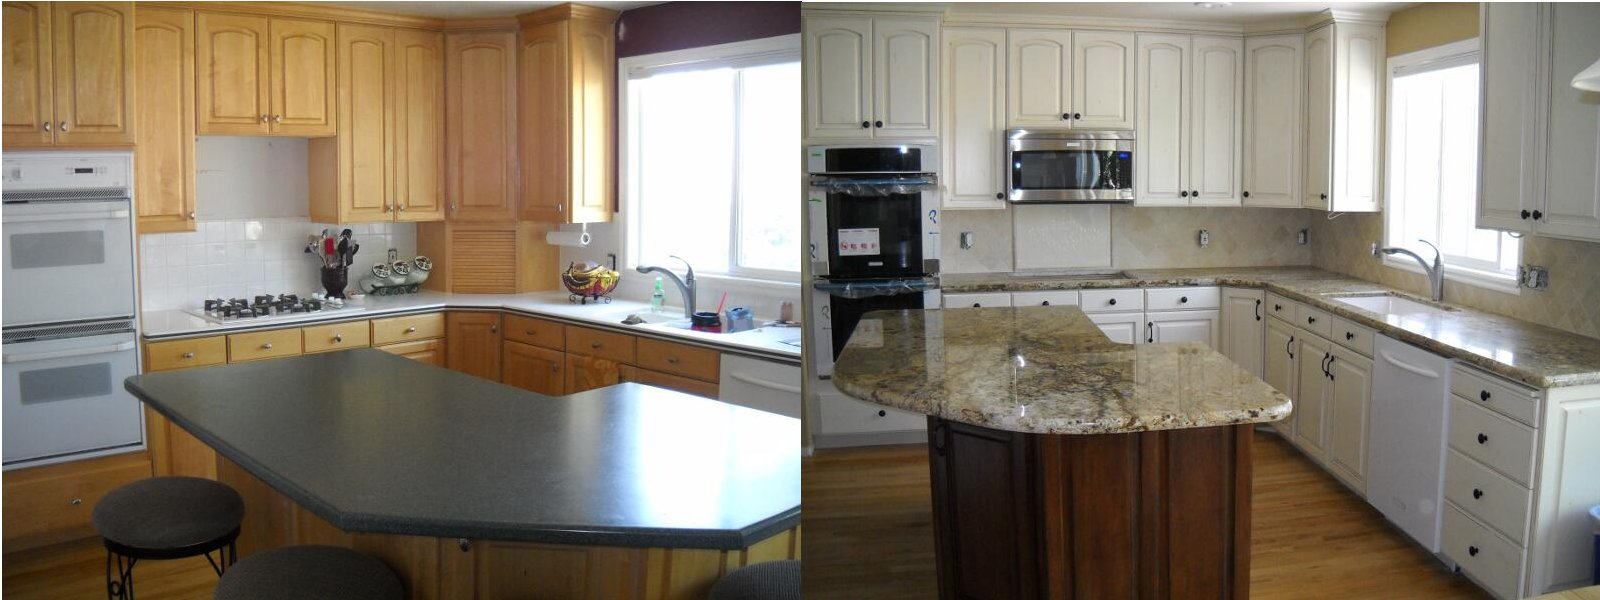 Telisa 39 s cabinet refinishing for Refinishing kitchen cabinets before and after